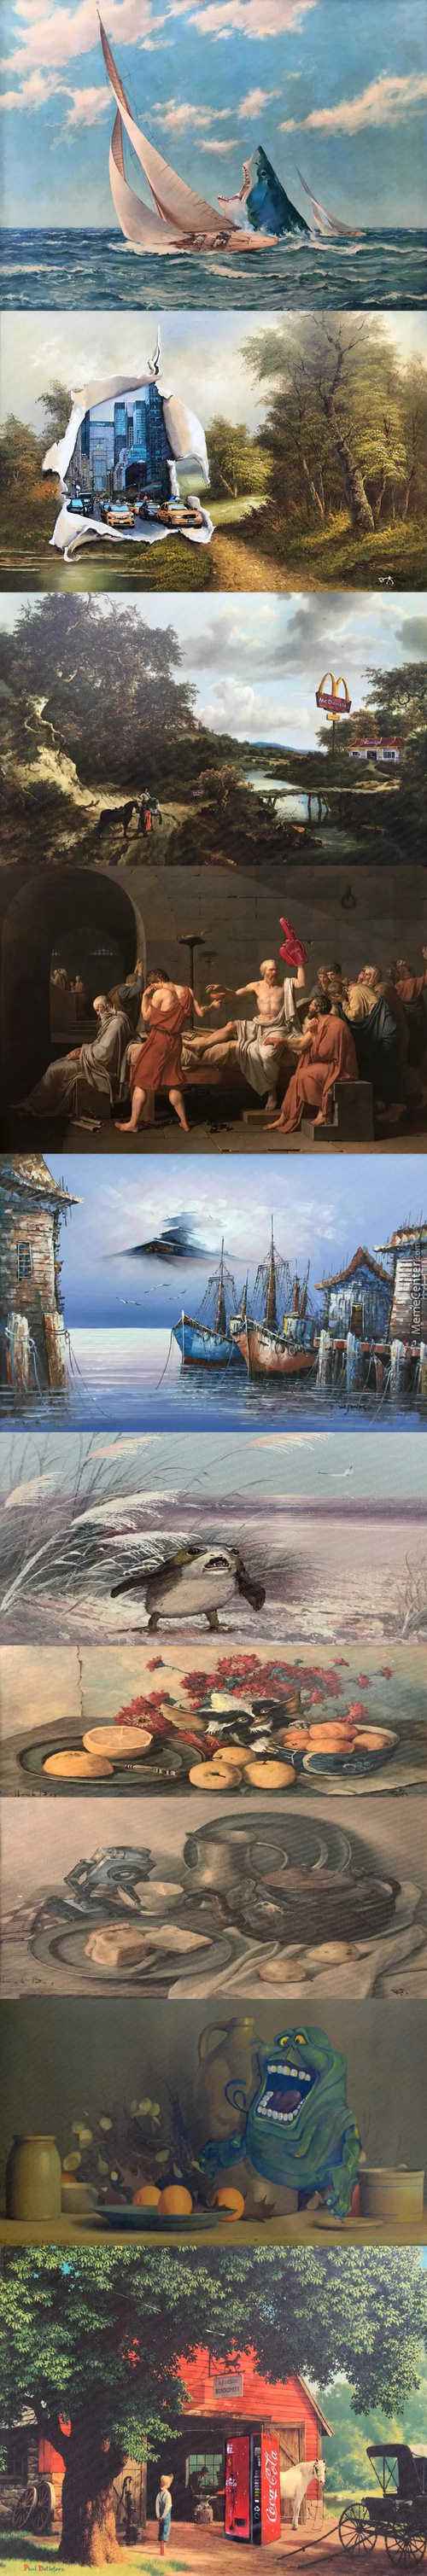 Altered Artwork 3 Thrift Store Paintings Re Imaged By Dave Pollot